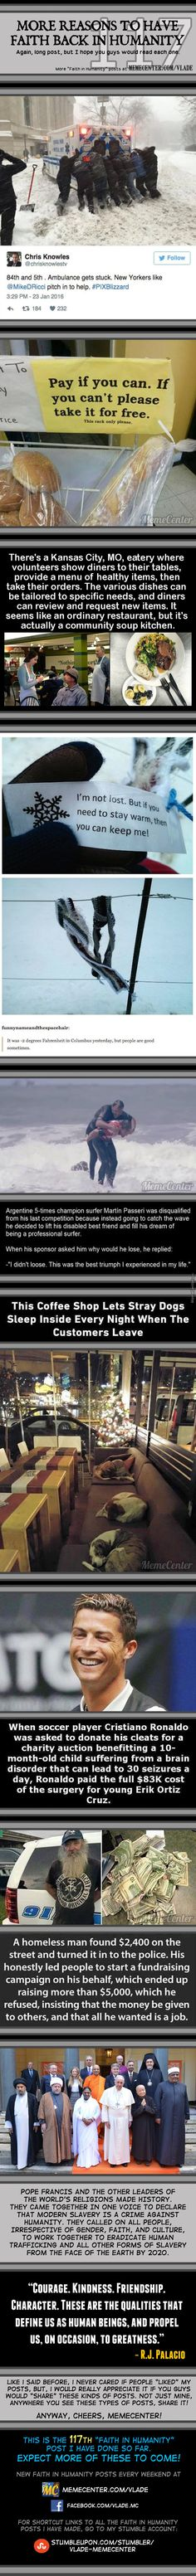 Faith In Humanity #117 by vlade - Meme Center